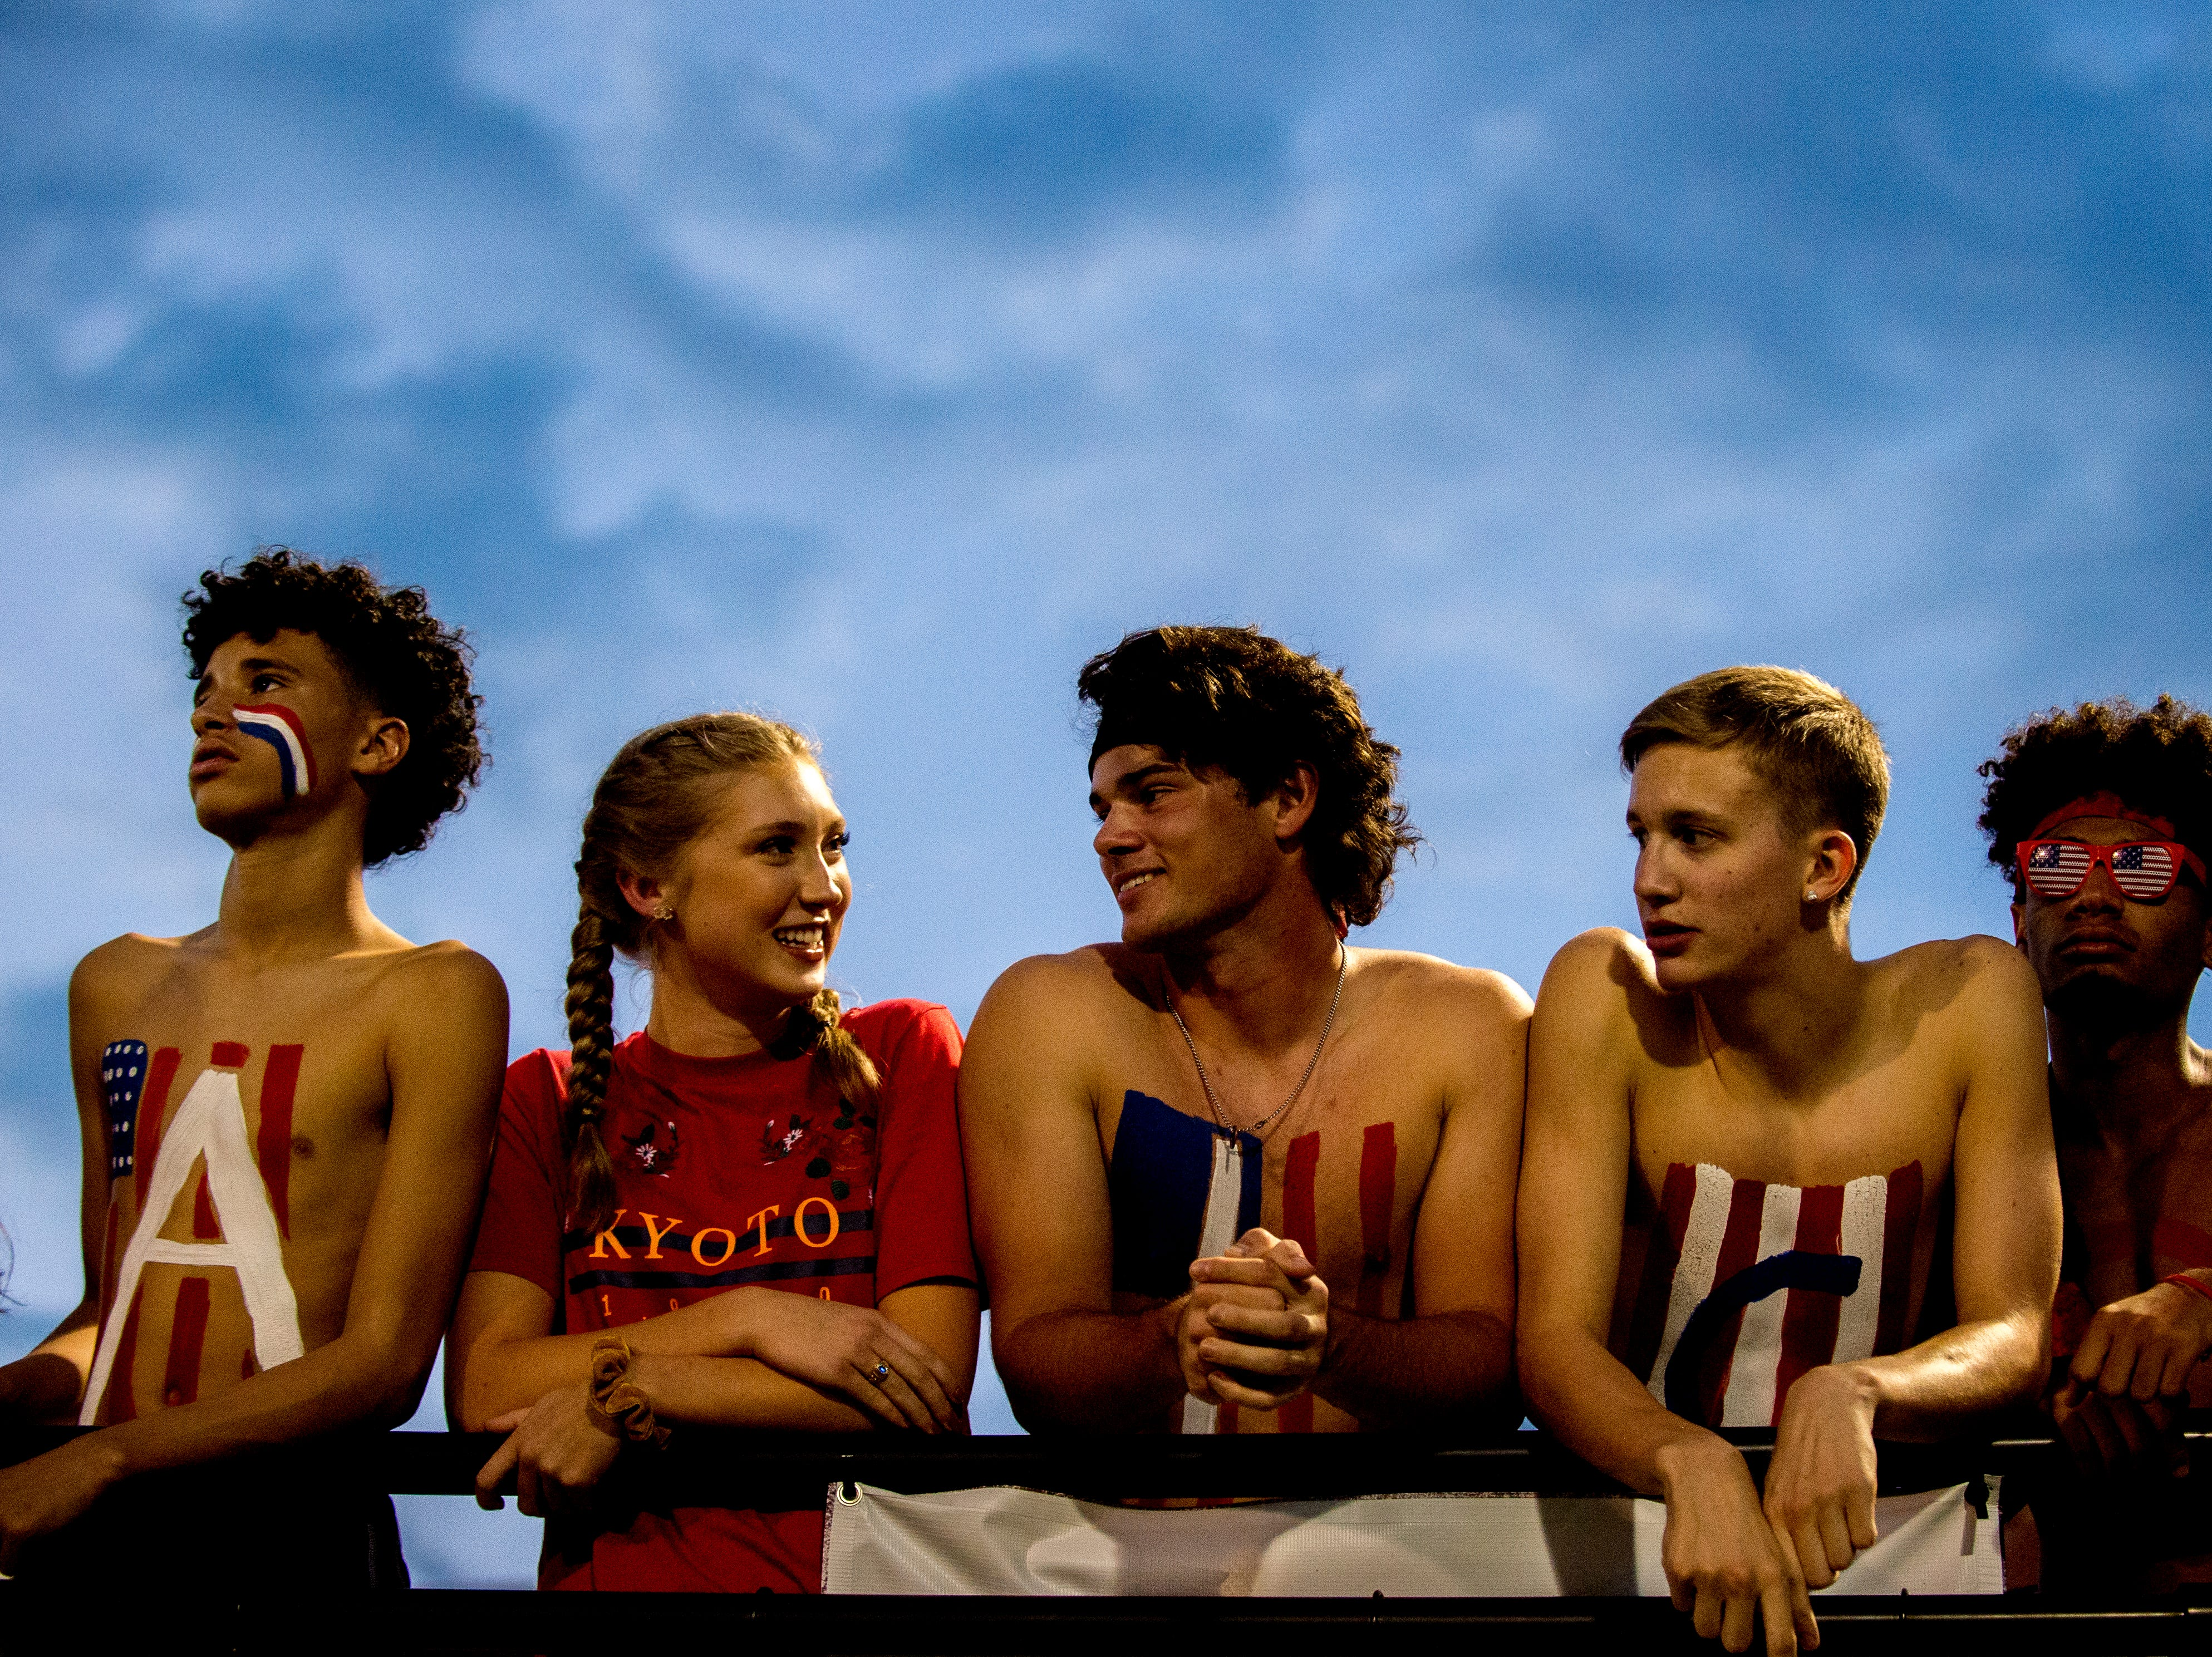 Alcoa fans hang out in the stands during a game between Alcoa and Dobyns-Bennett at Alcoa High School in Alcoa, Tennessee on Friday, September 21, 2018.